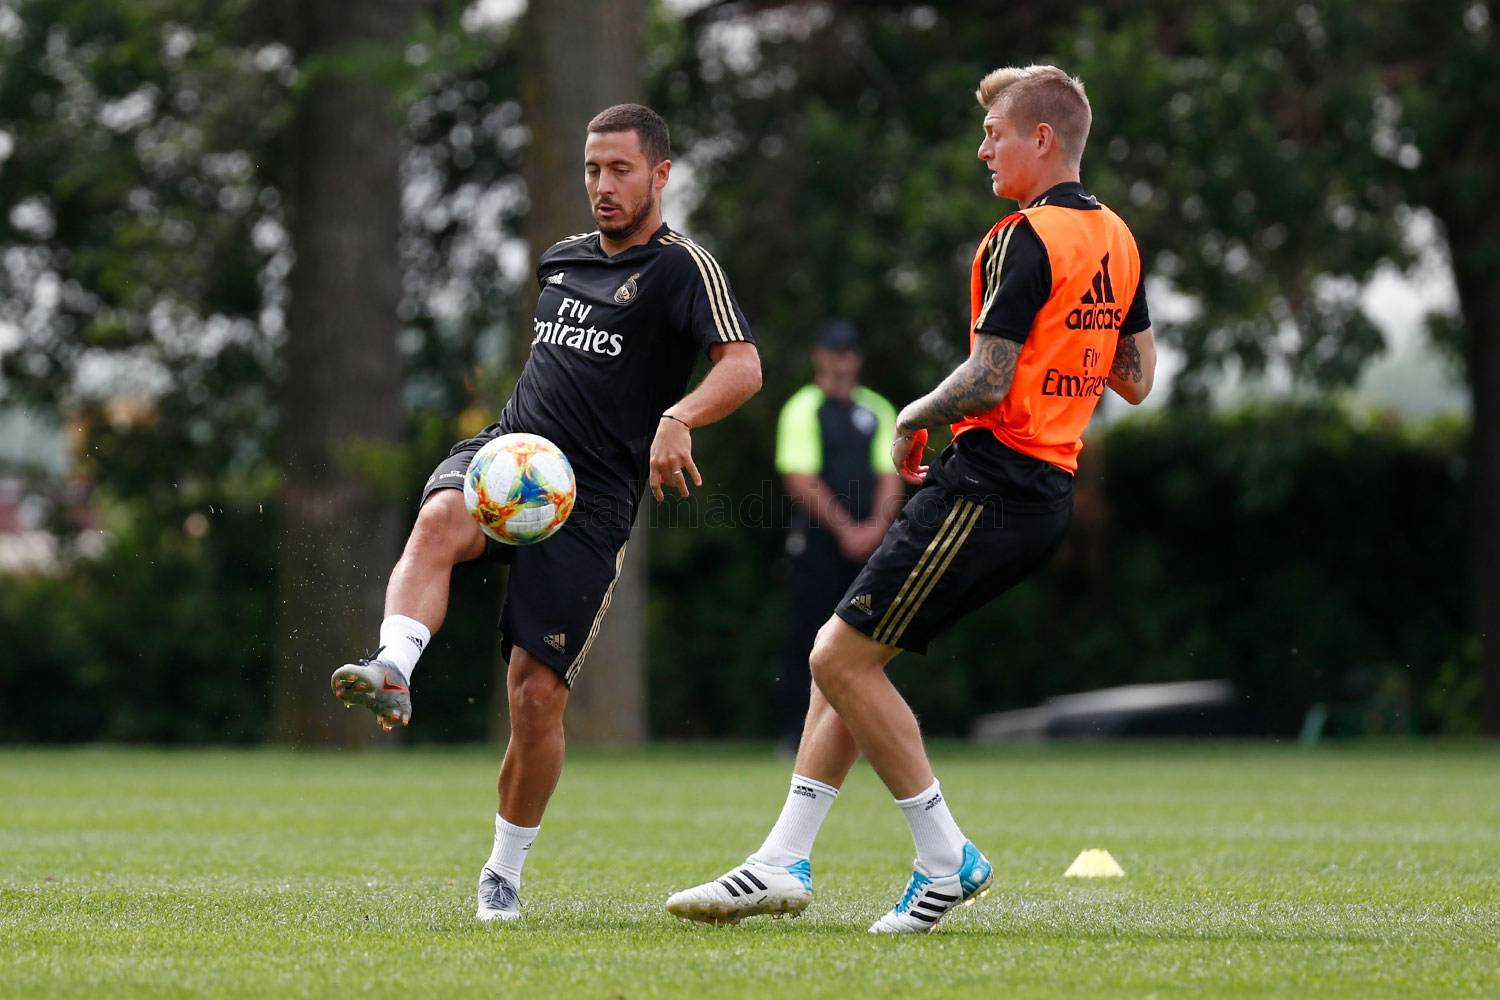 Real Madrid - Entrenamiento del Real Madrid en Montreal - 17-07-2019